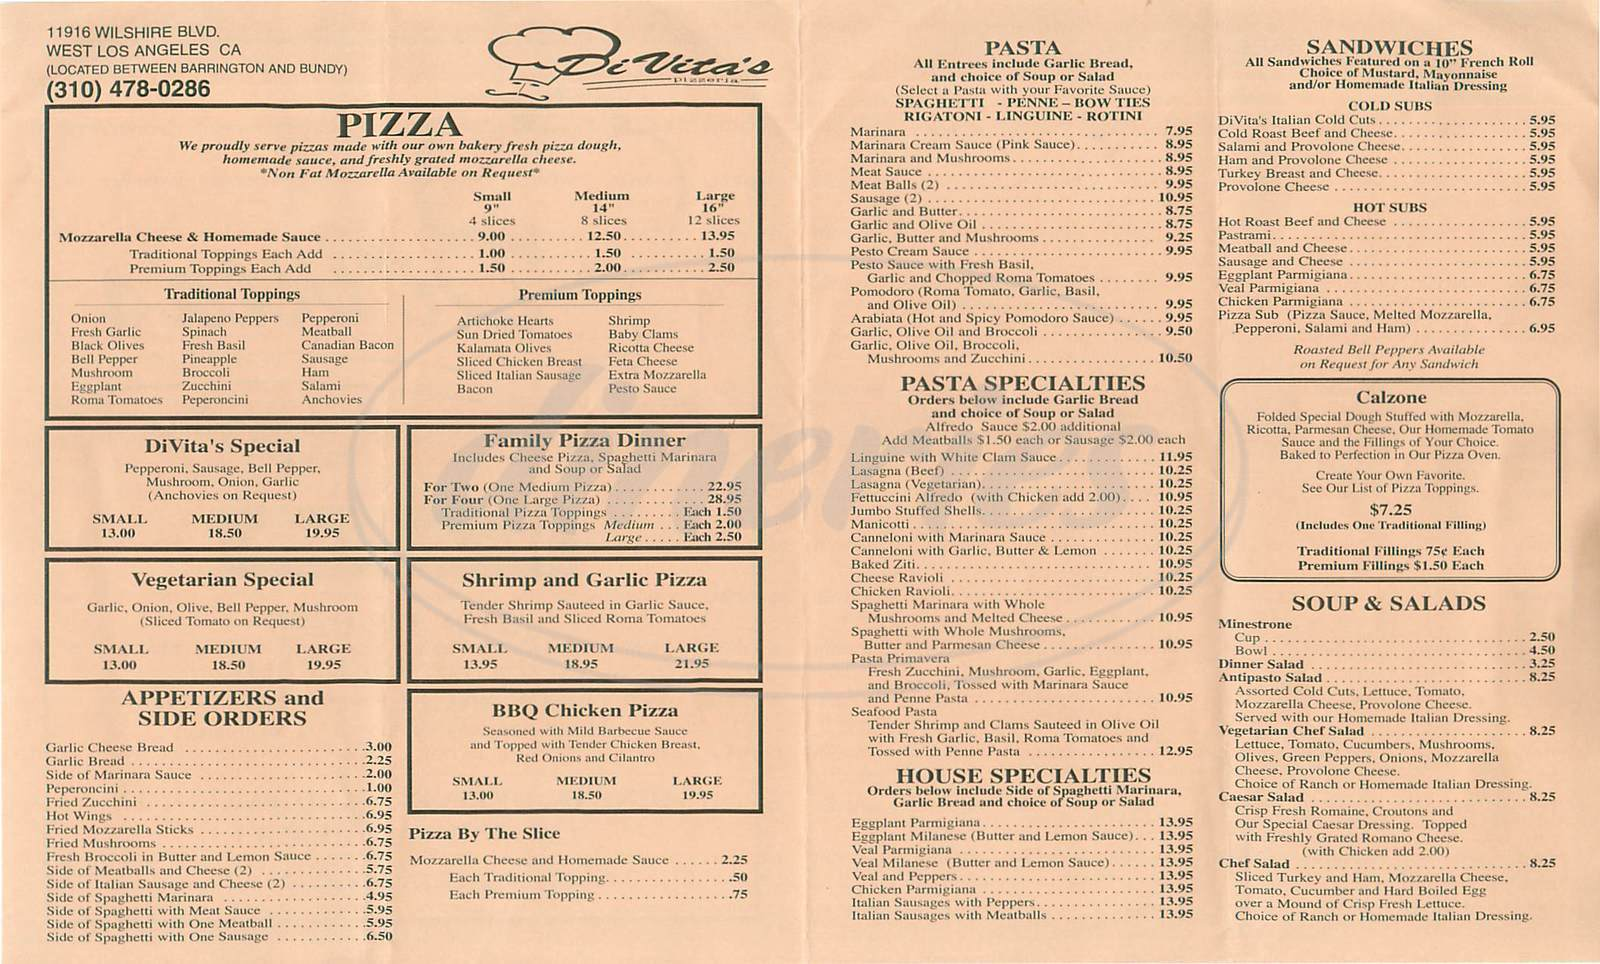 menu for Di Vita's Pizzeria